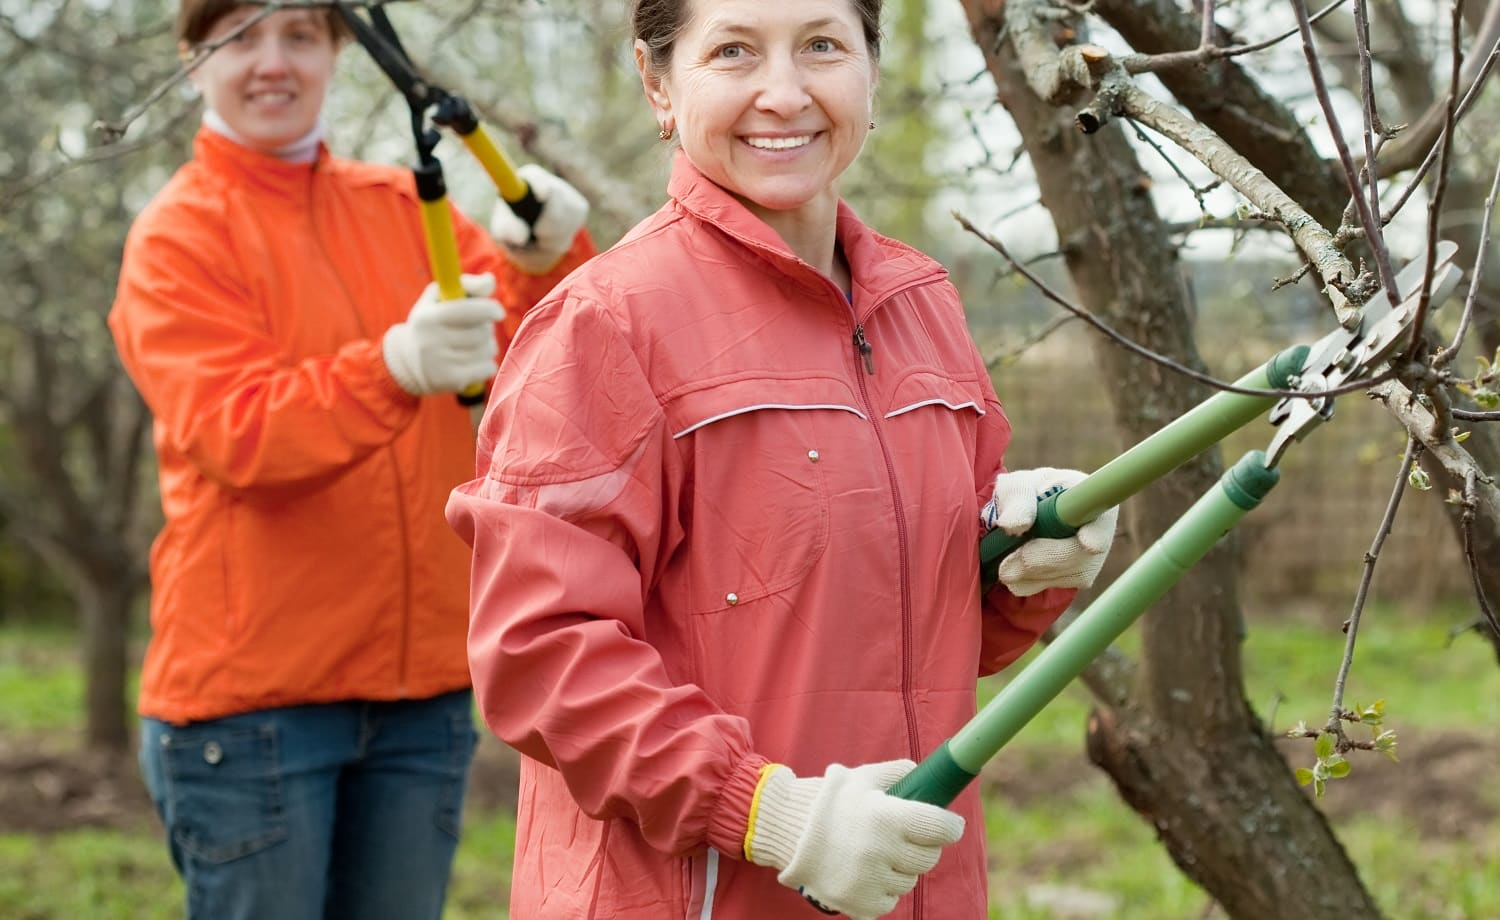 Two women pruned branches in the orchard in spring